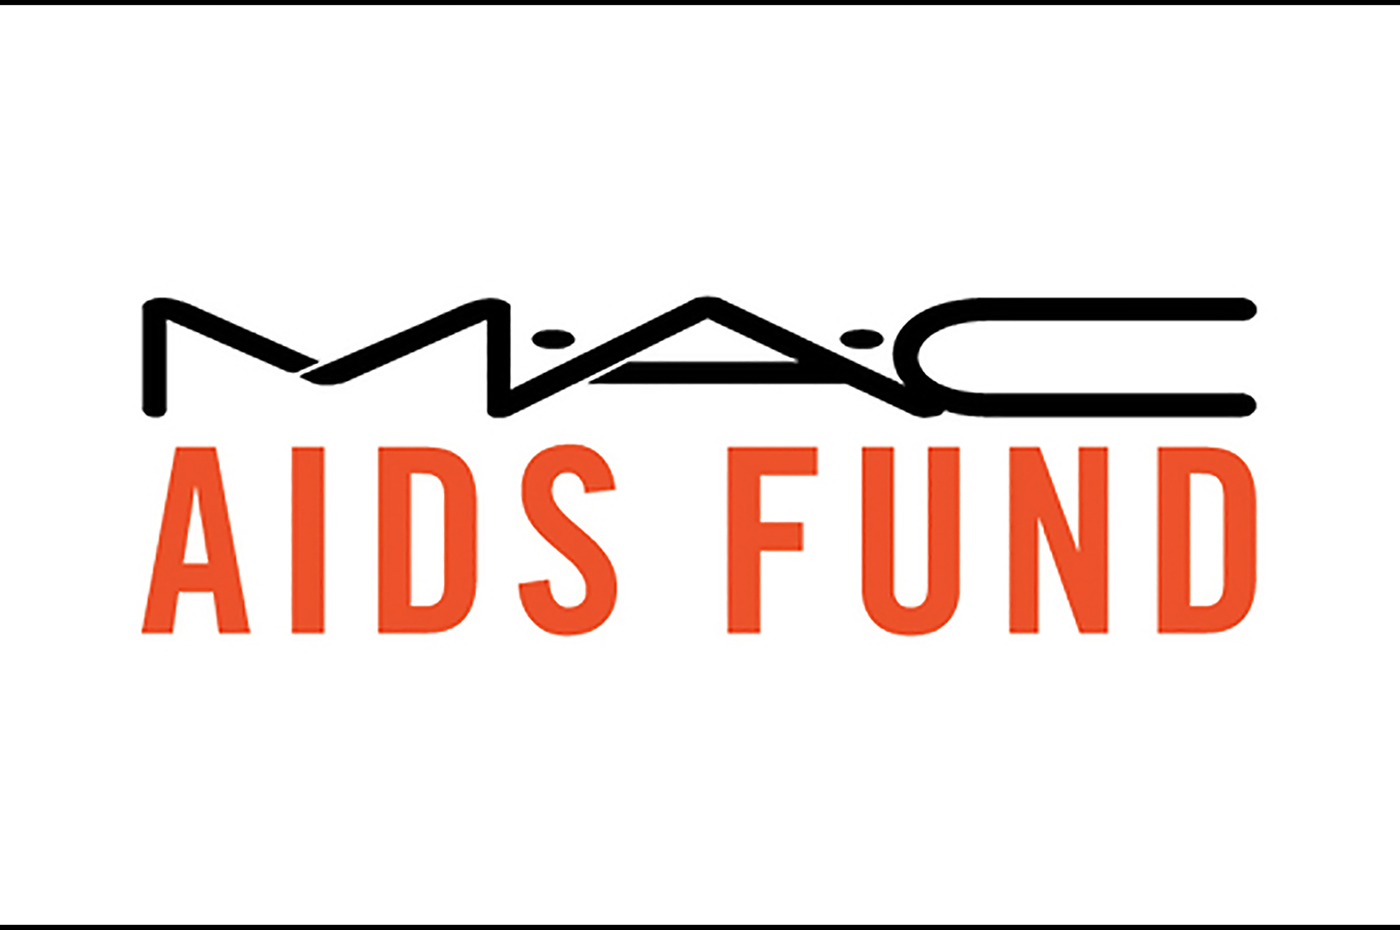 MAC AIDS FUND / DIGITAL STRATEGY INTEGRATION    Combined a critical assessment of MAC Cosmetics, MAC Aids Fund, and Viva Glam digital efforts to craft an integration roadmap for CSR programs into MAC's digital and social media strategy, including social platform evolution and visual content recommendations resulting in user engagement growth for the MAC Aids Fund.